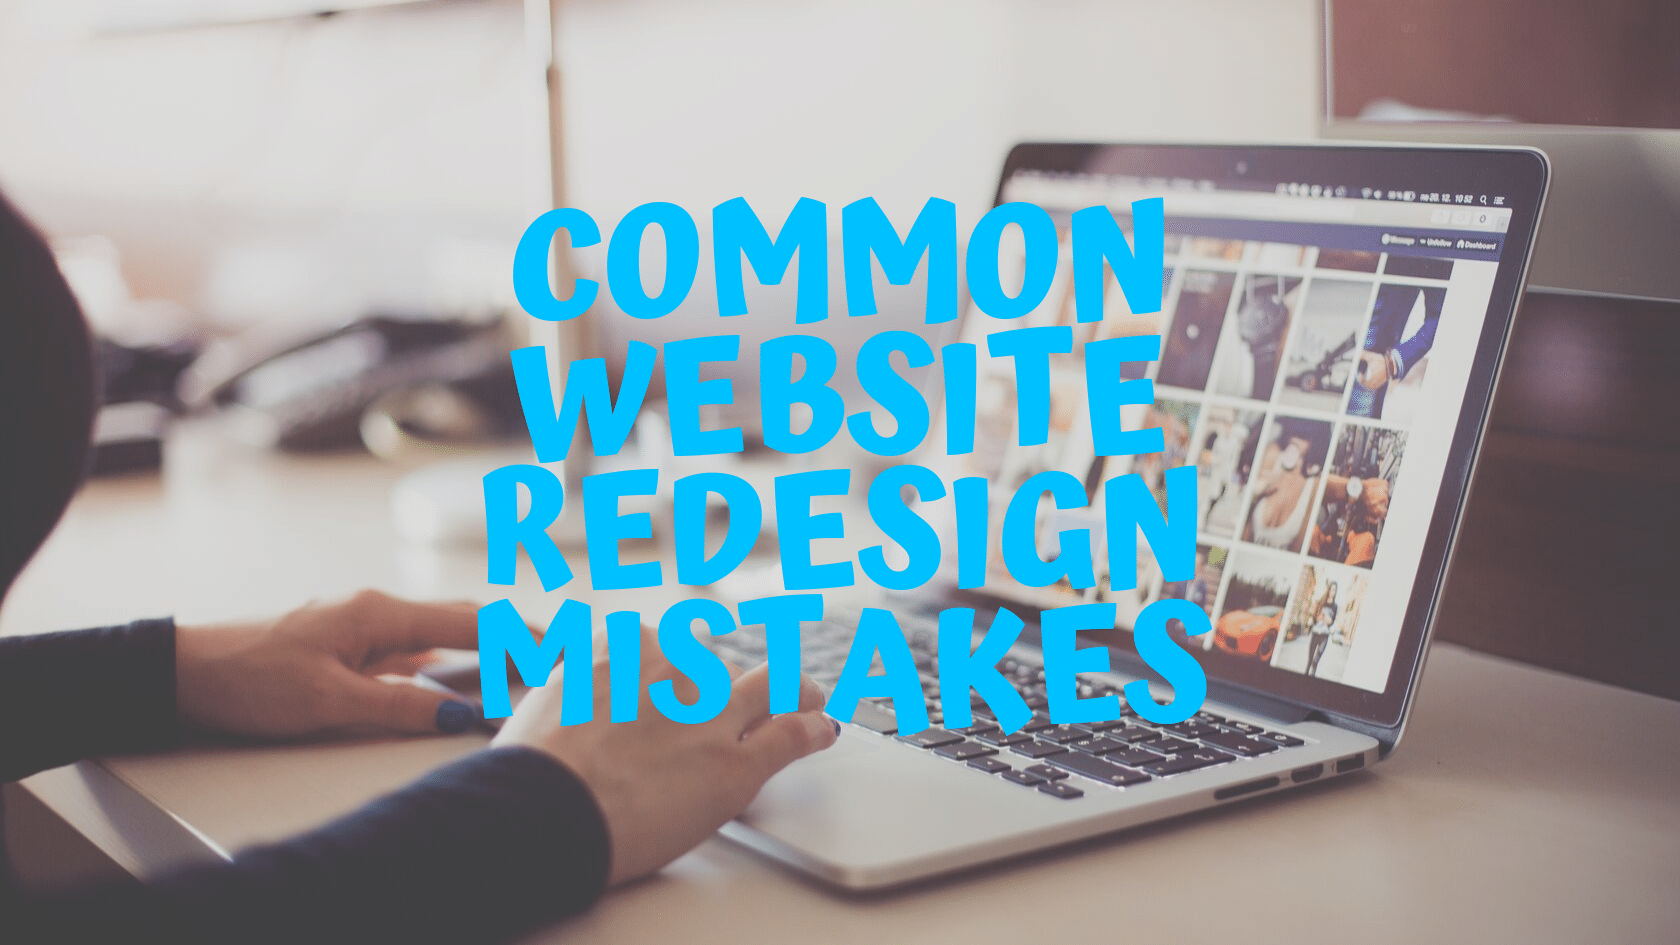 Most Common Website Redesign Mistakes You're Making